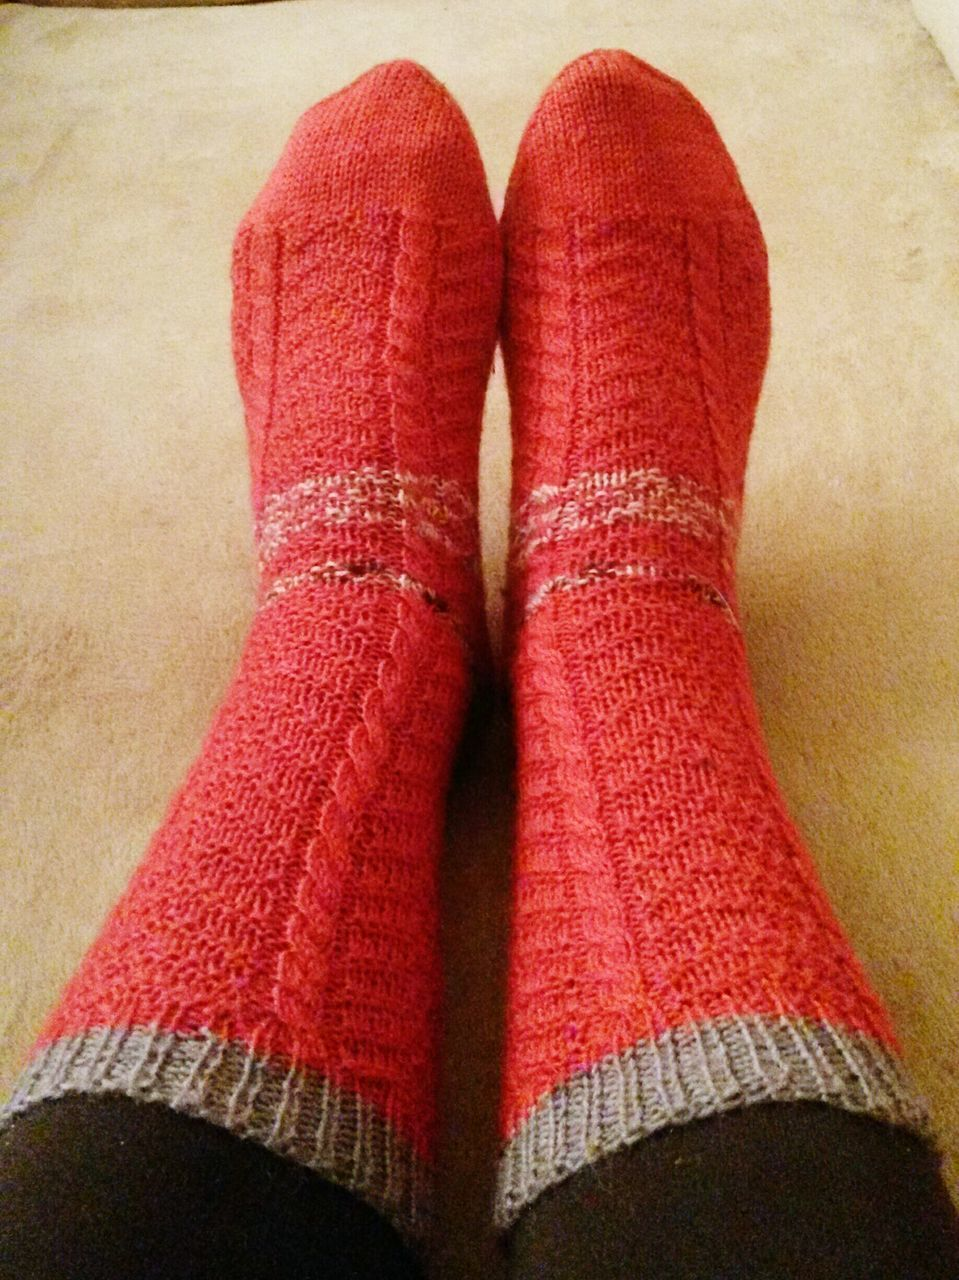 indoors, sock, red, human body part, human leg, real people, wool, sweater, one person, close-up, low section, day, people